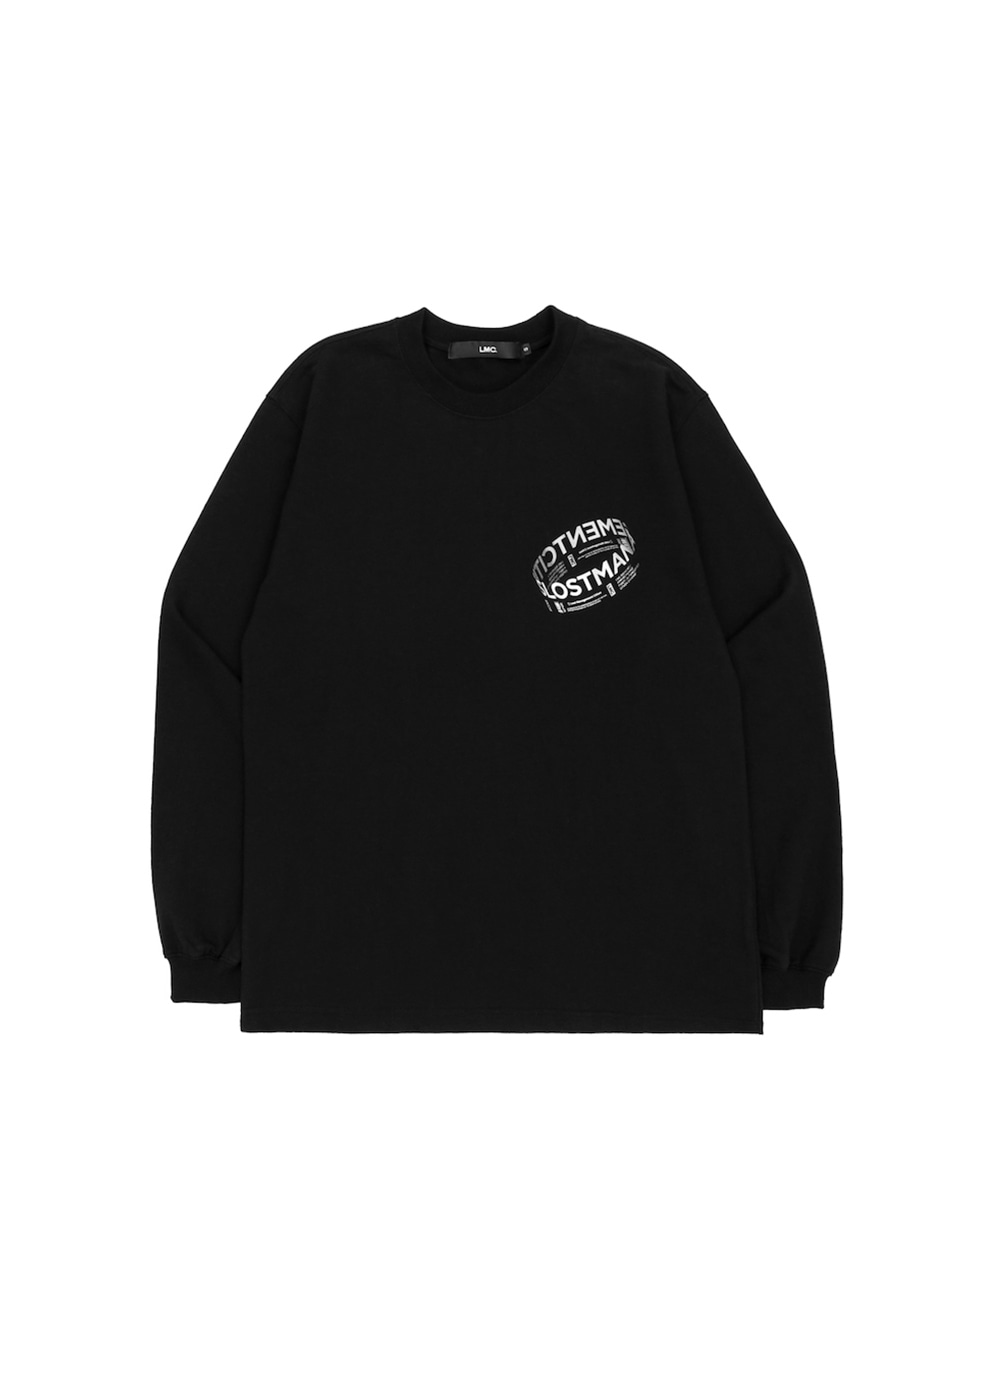 LMC RING LOGO LSV SWEAT TEE black